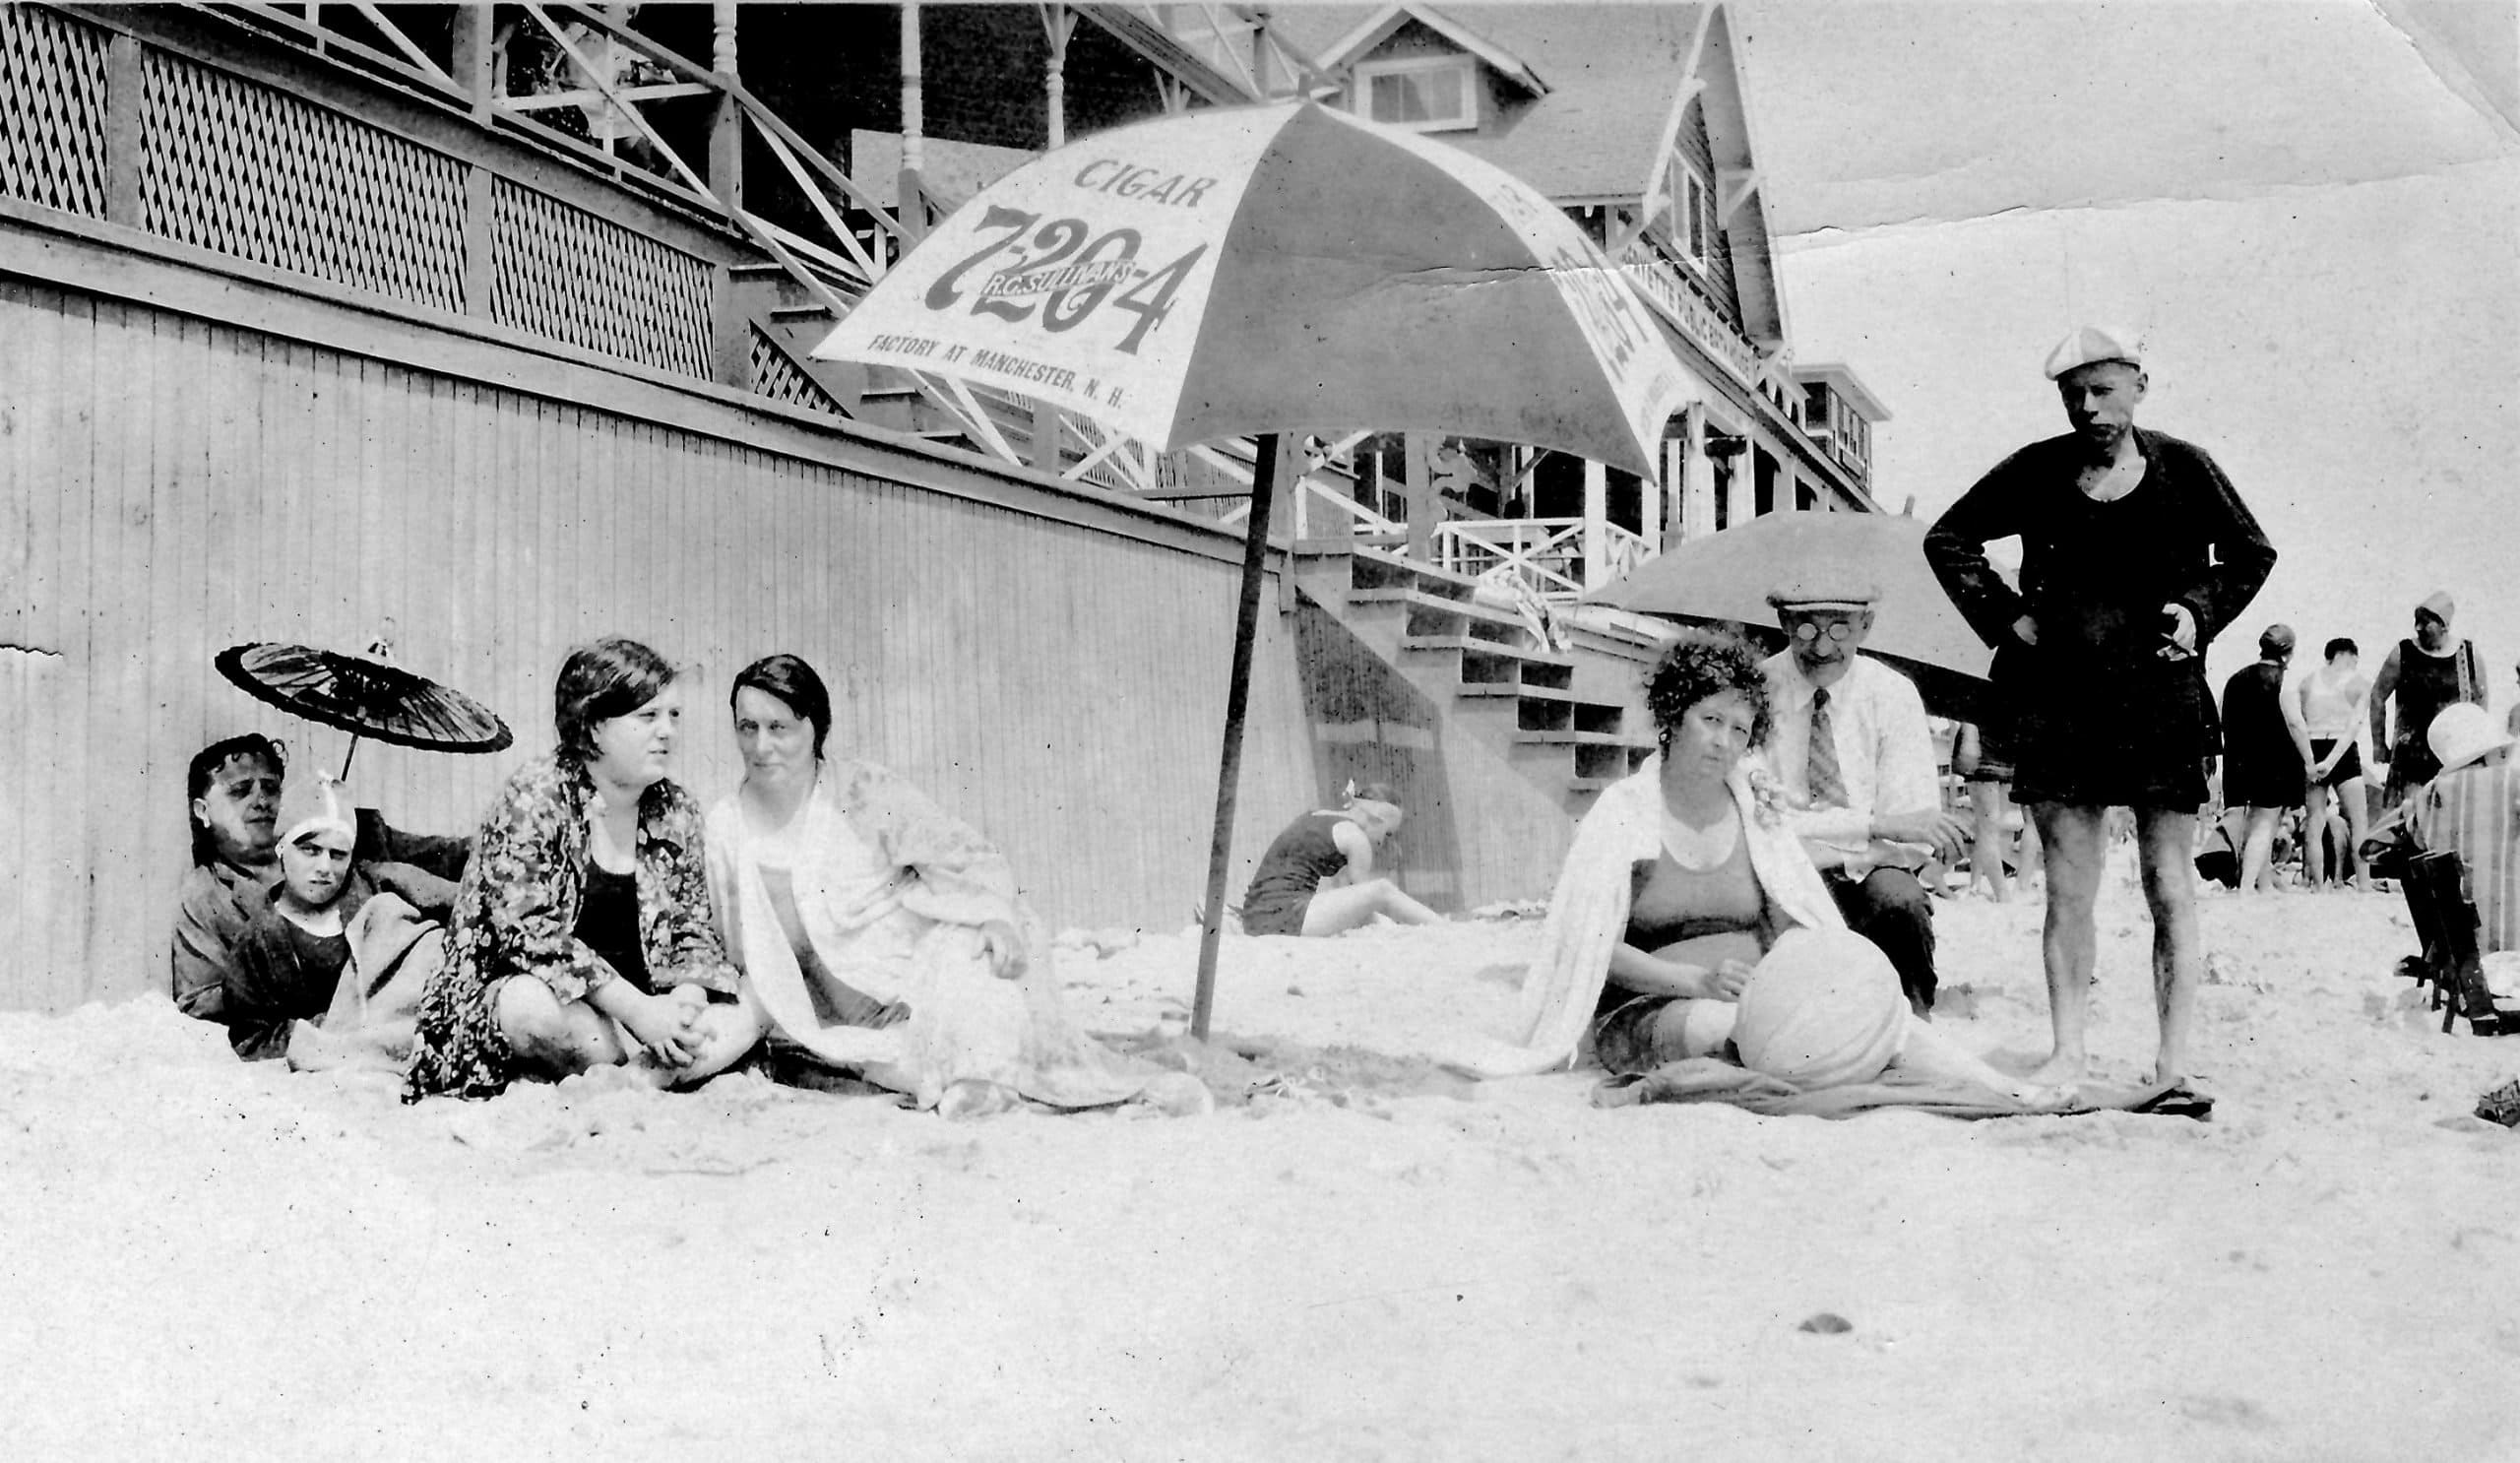 Old Orchard Beach, Maine (1929)